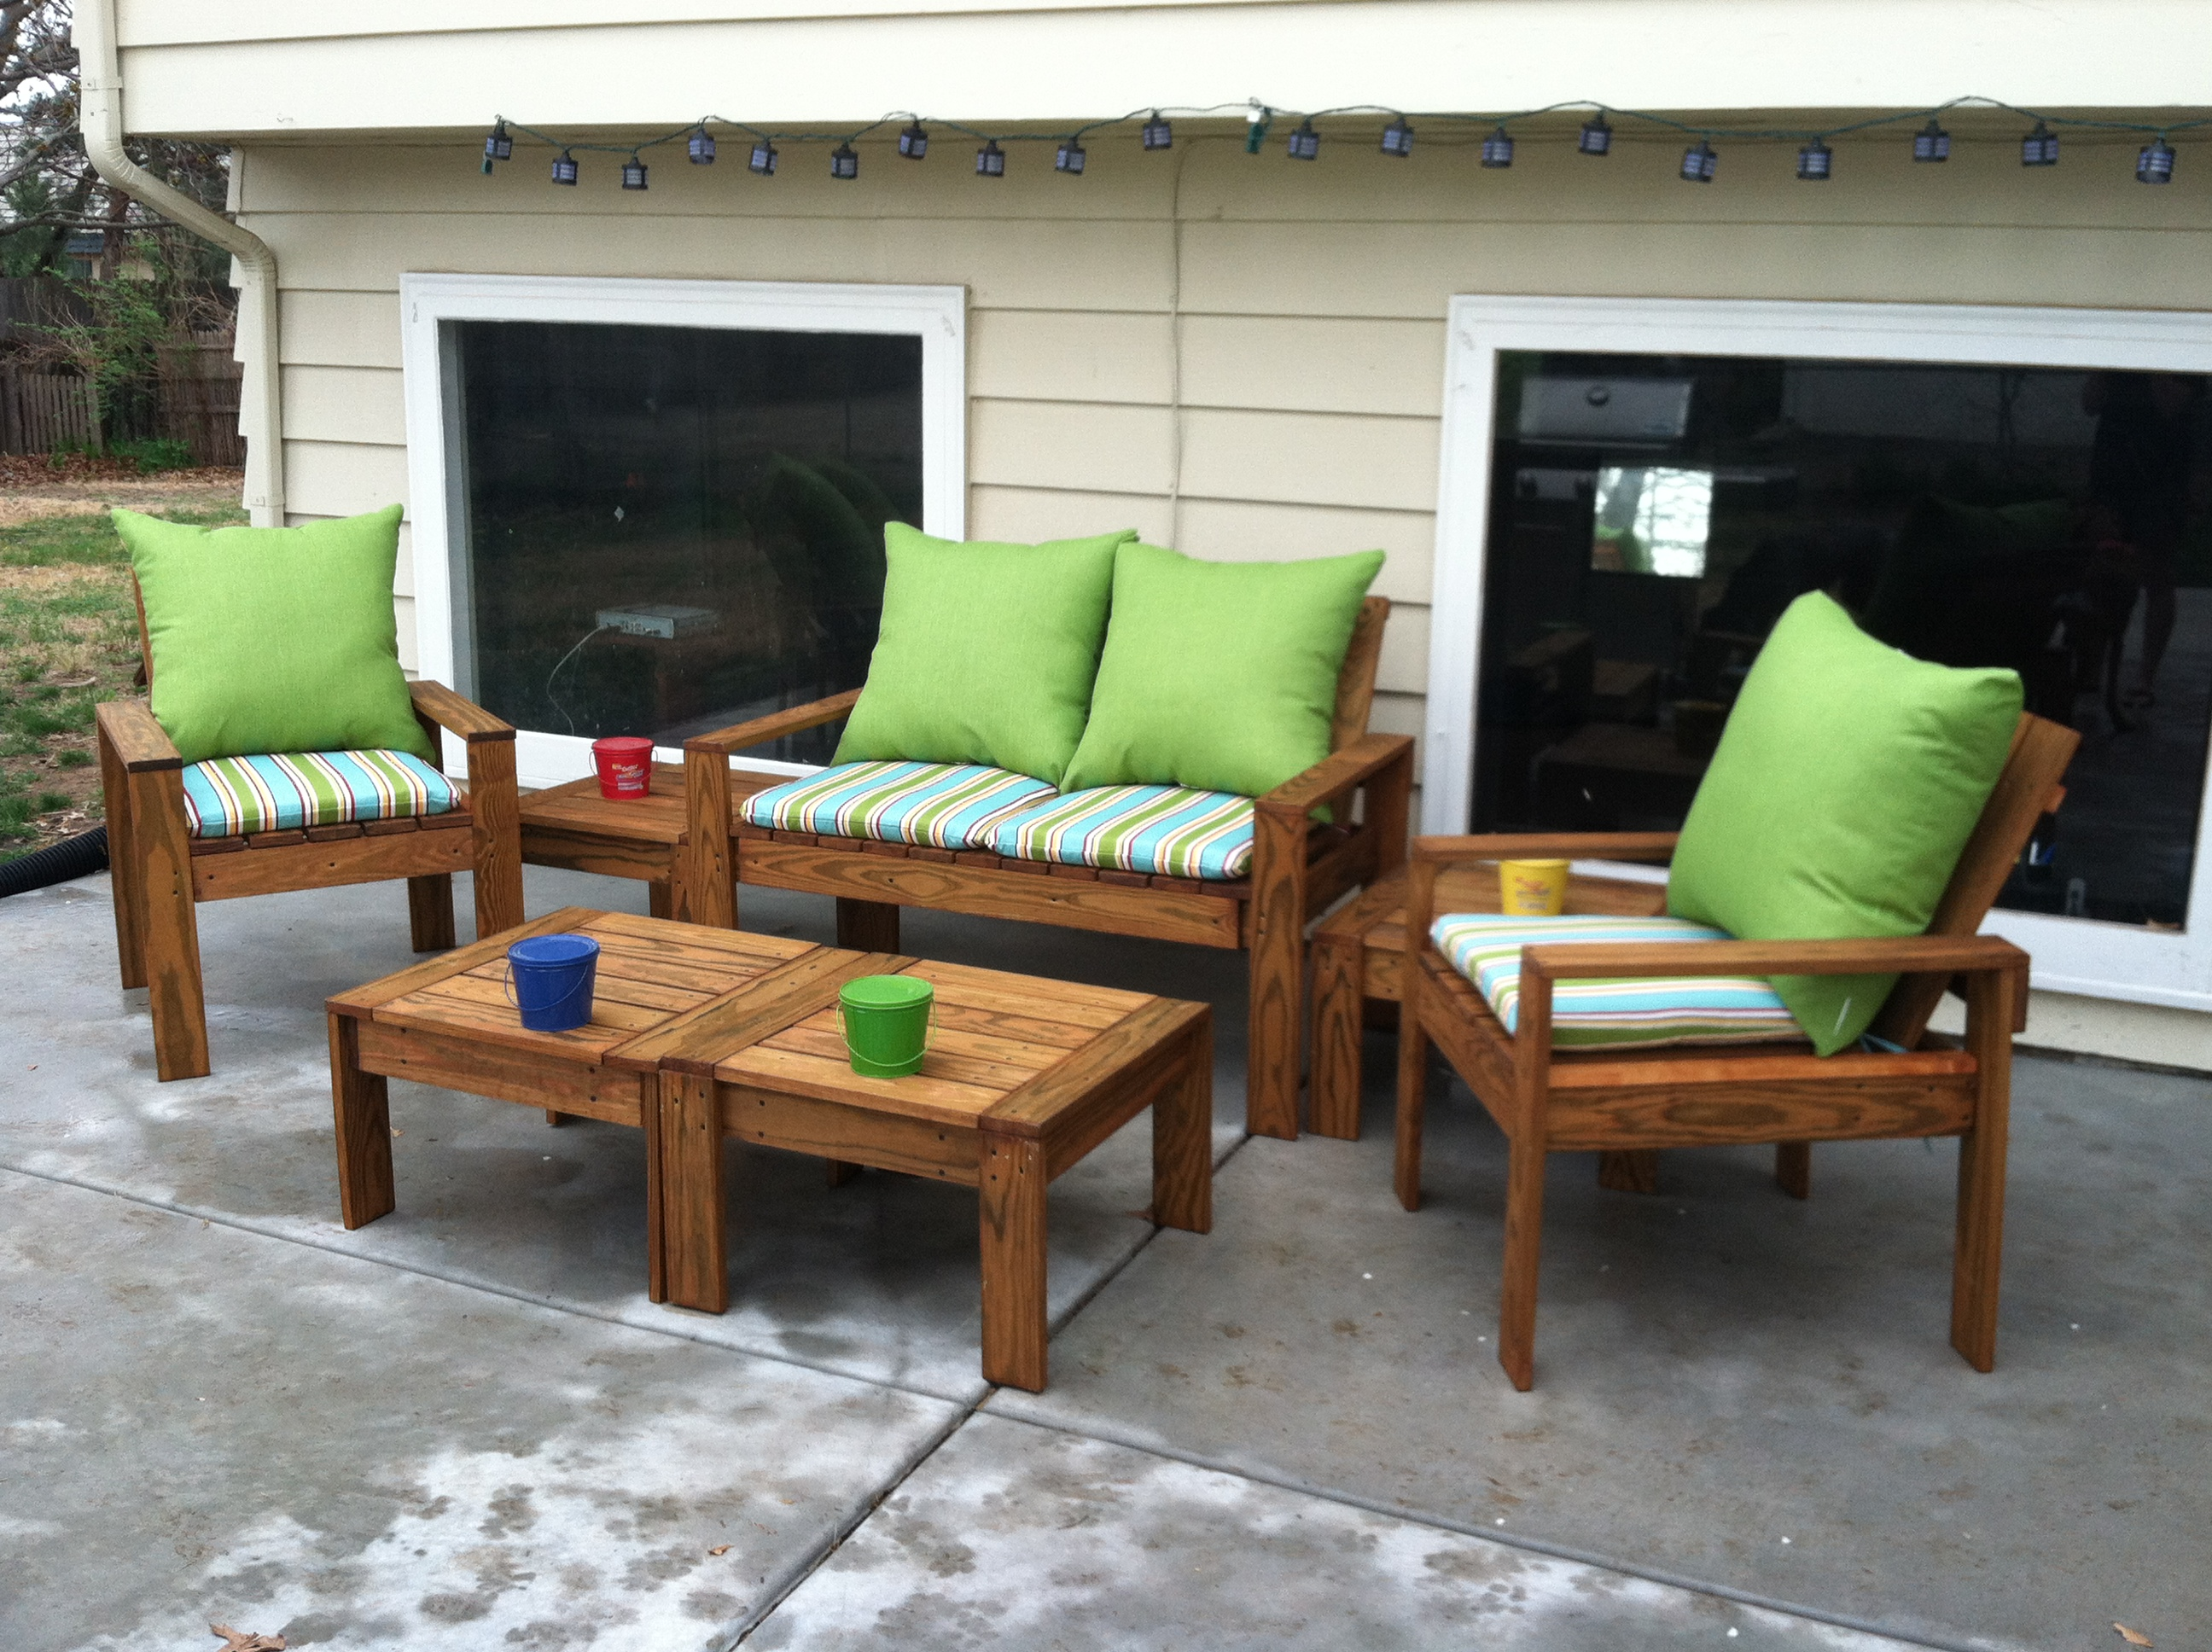 Simple Outdoor Conversation Set. Ana White   Simple Outdoor Conversation Set   DIY Projects